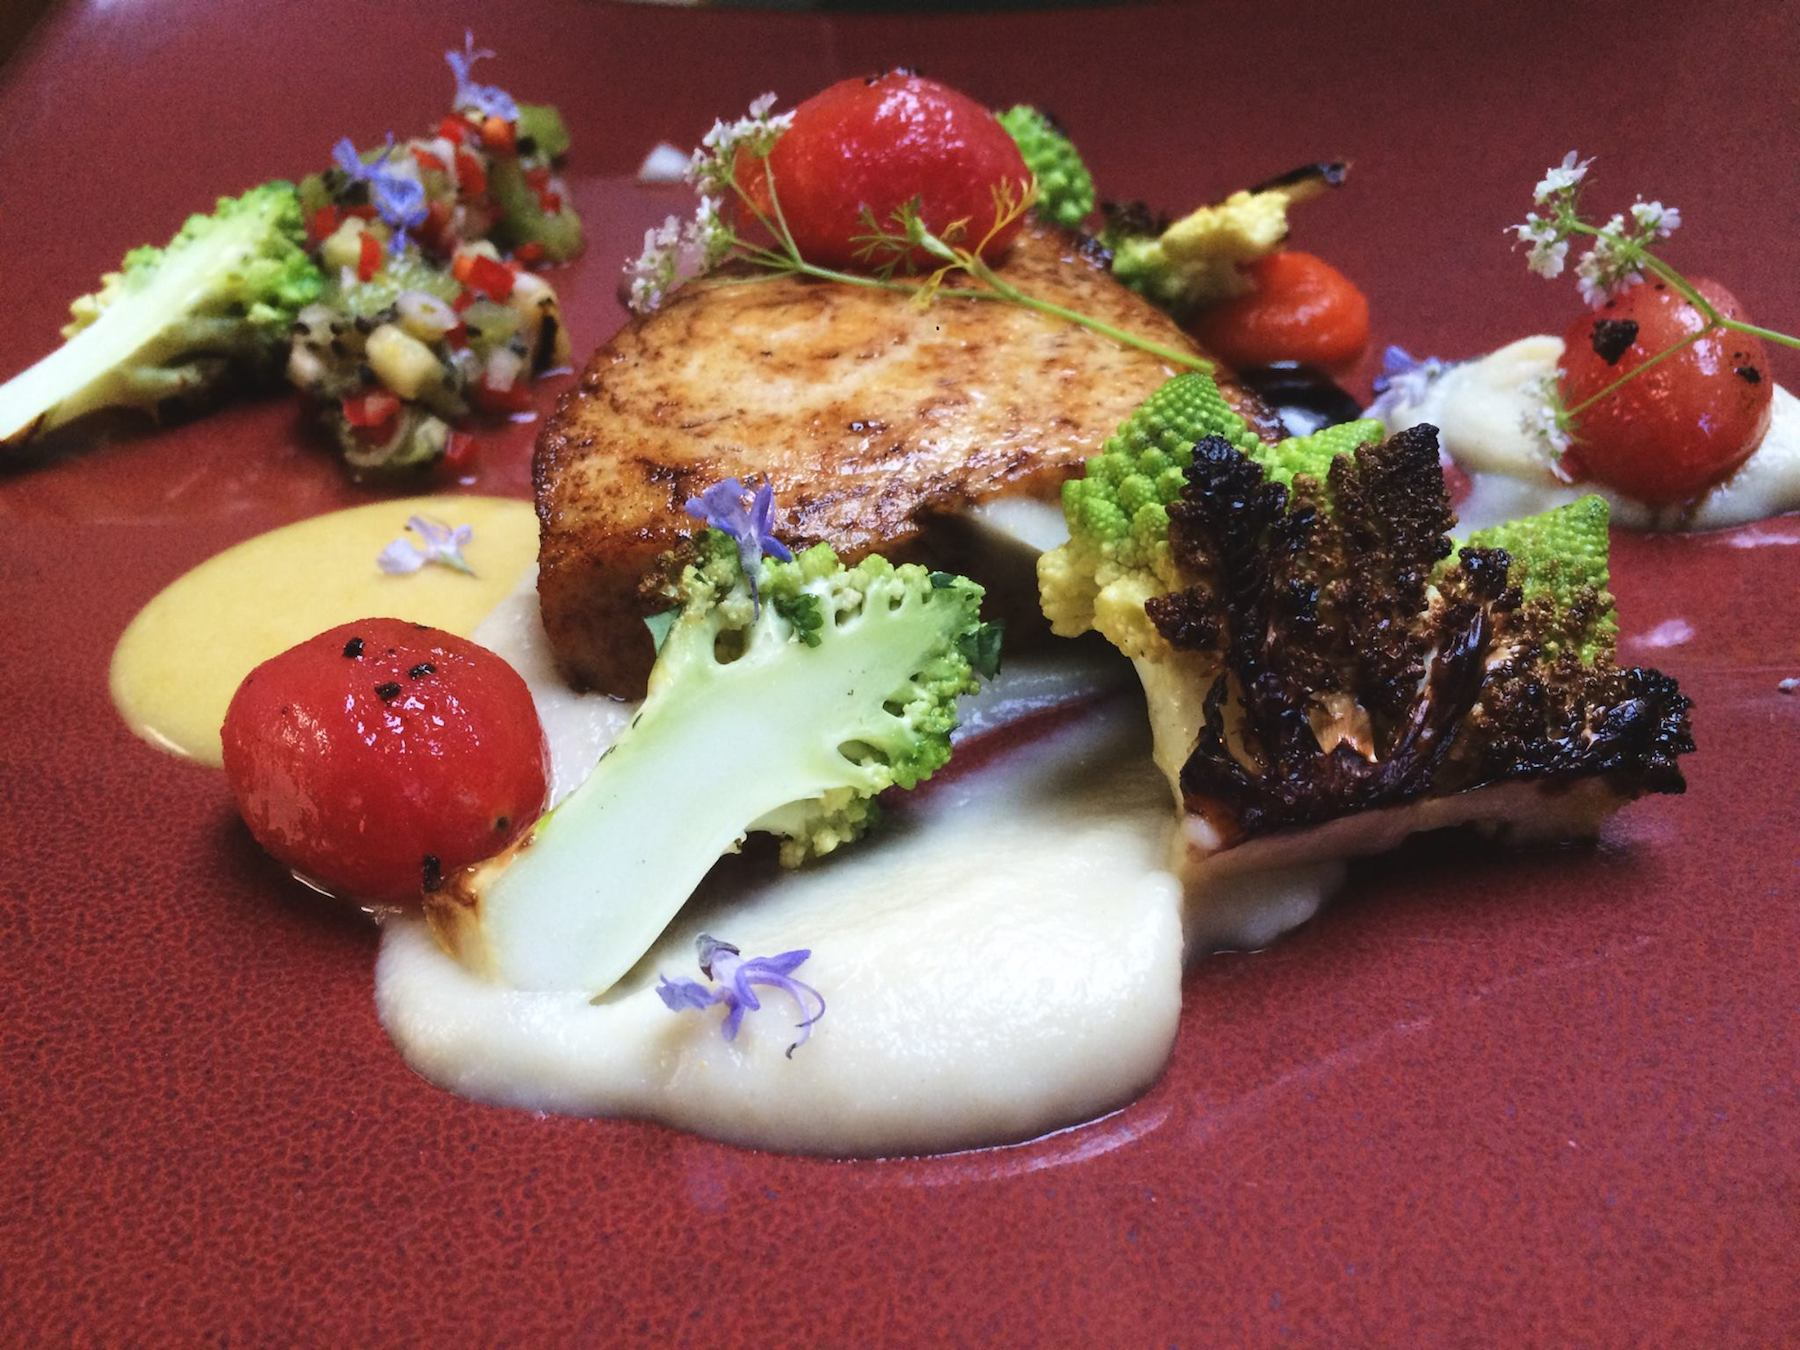 A dish from earlier this year at Hollins House, as posted on their Facebook page February 24, 2015